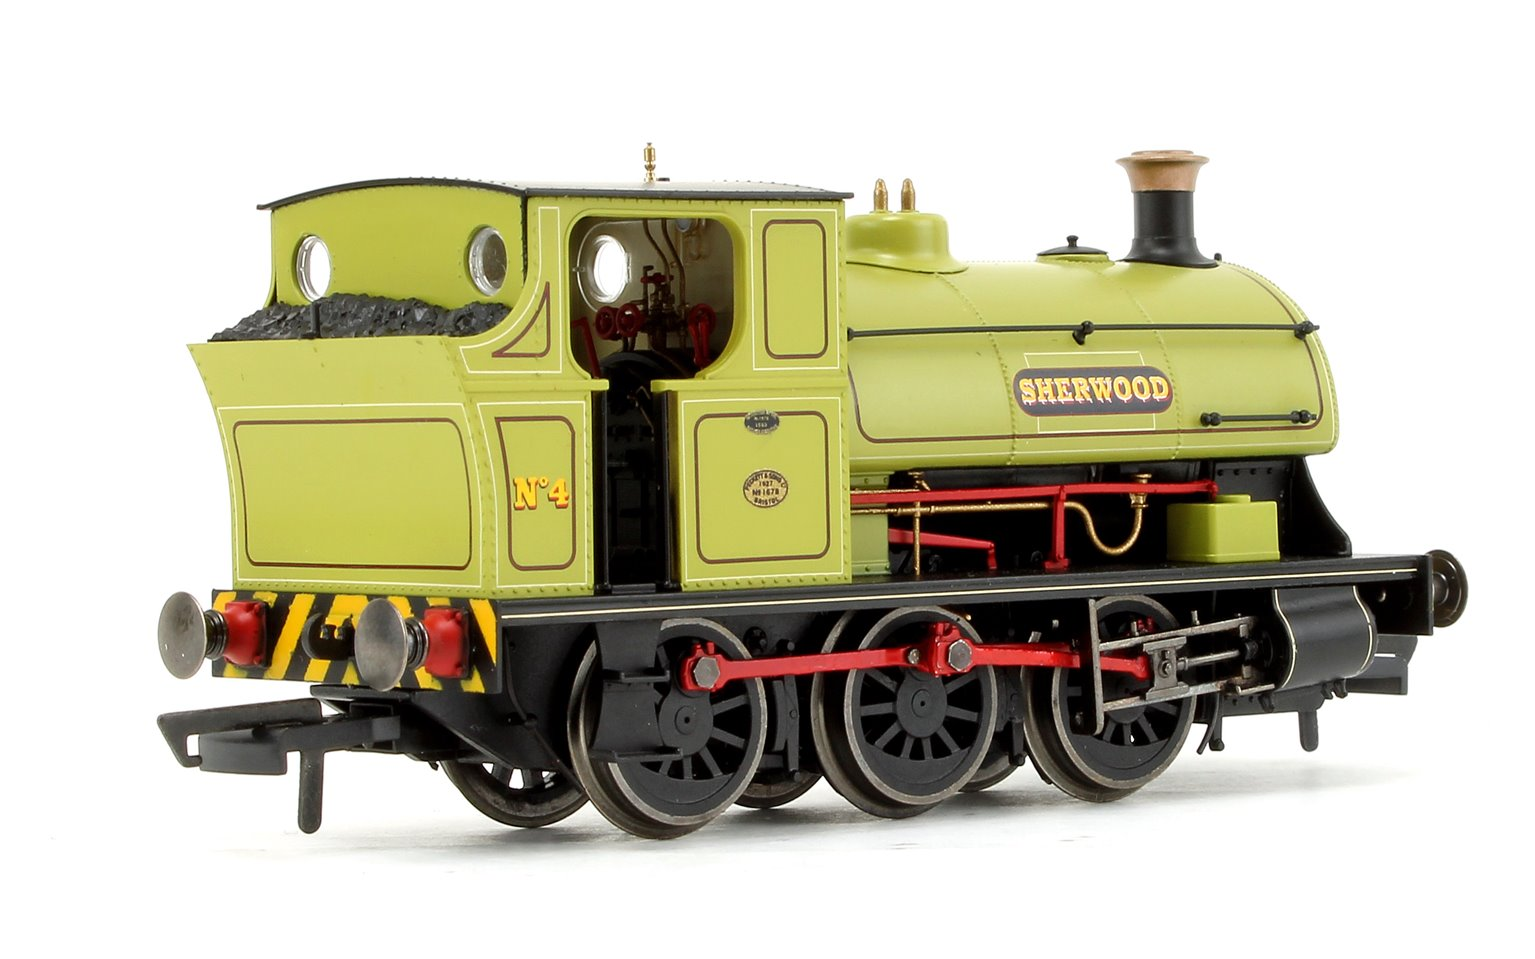 Sherwood Colliery Co. Ltd, Peckett B2 Class, 0-6-0ST, No.4 'Sherwood' DCC FITTED